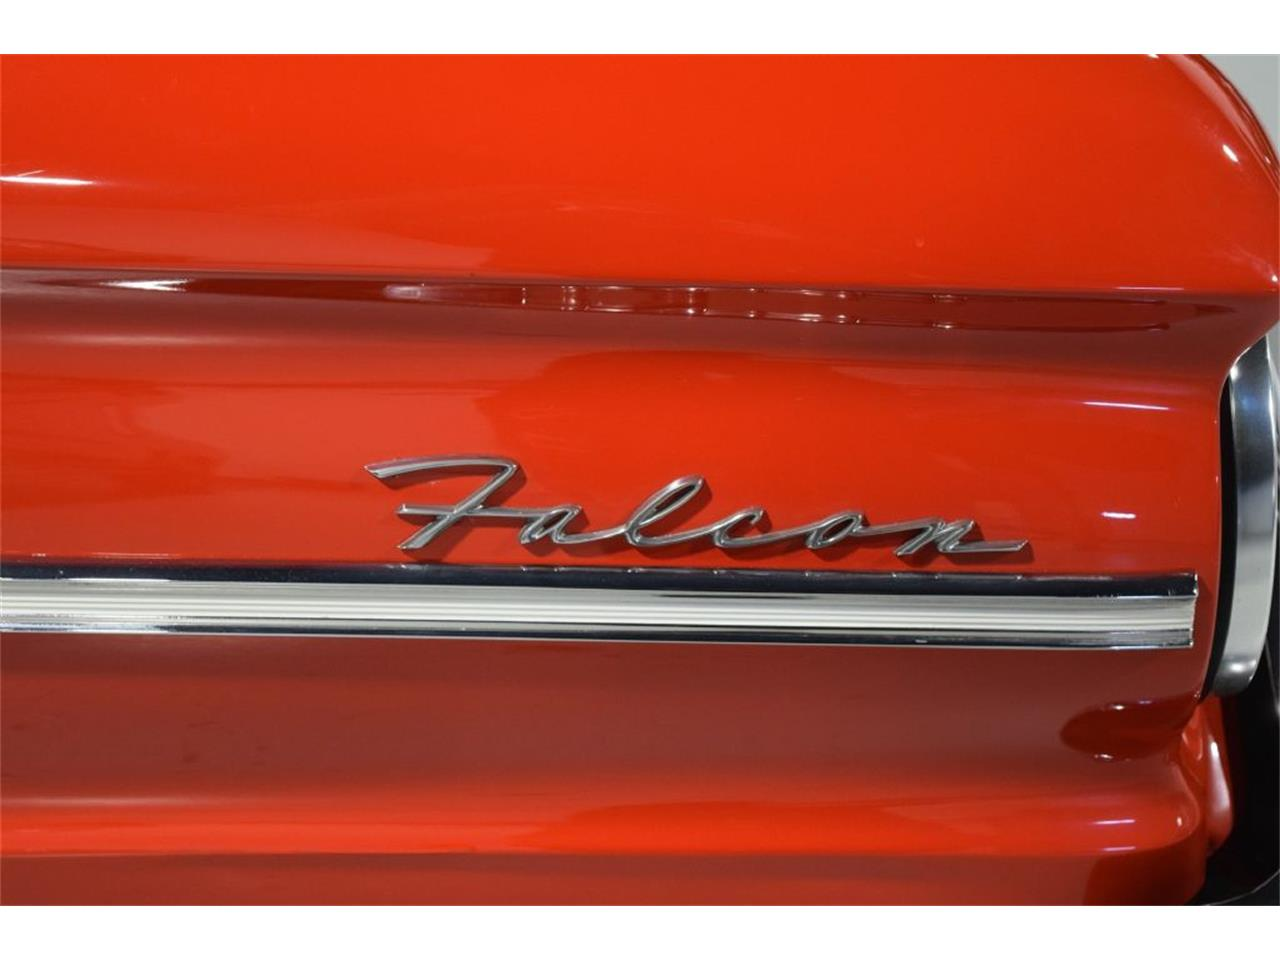 1963 Ford Falcon Futura for sale in Sioux City, IA – photo 12